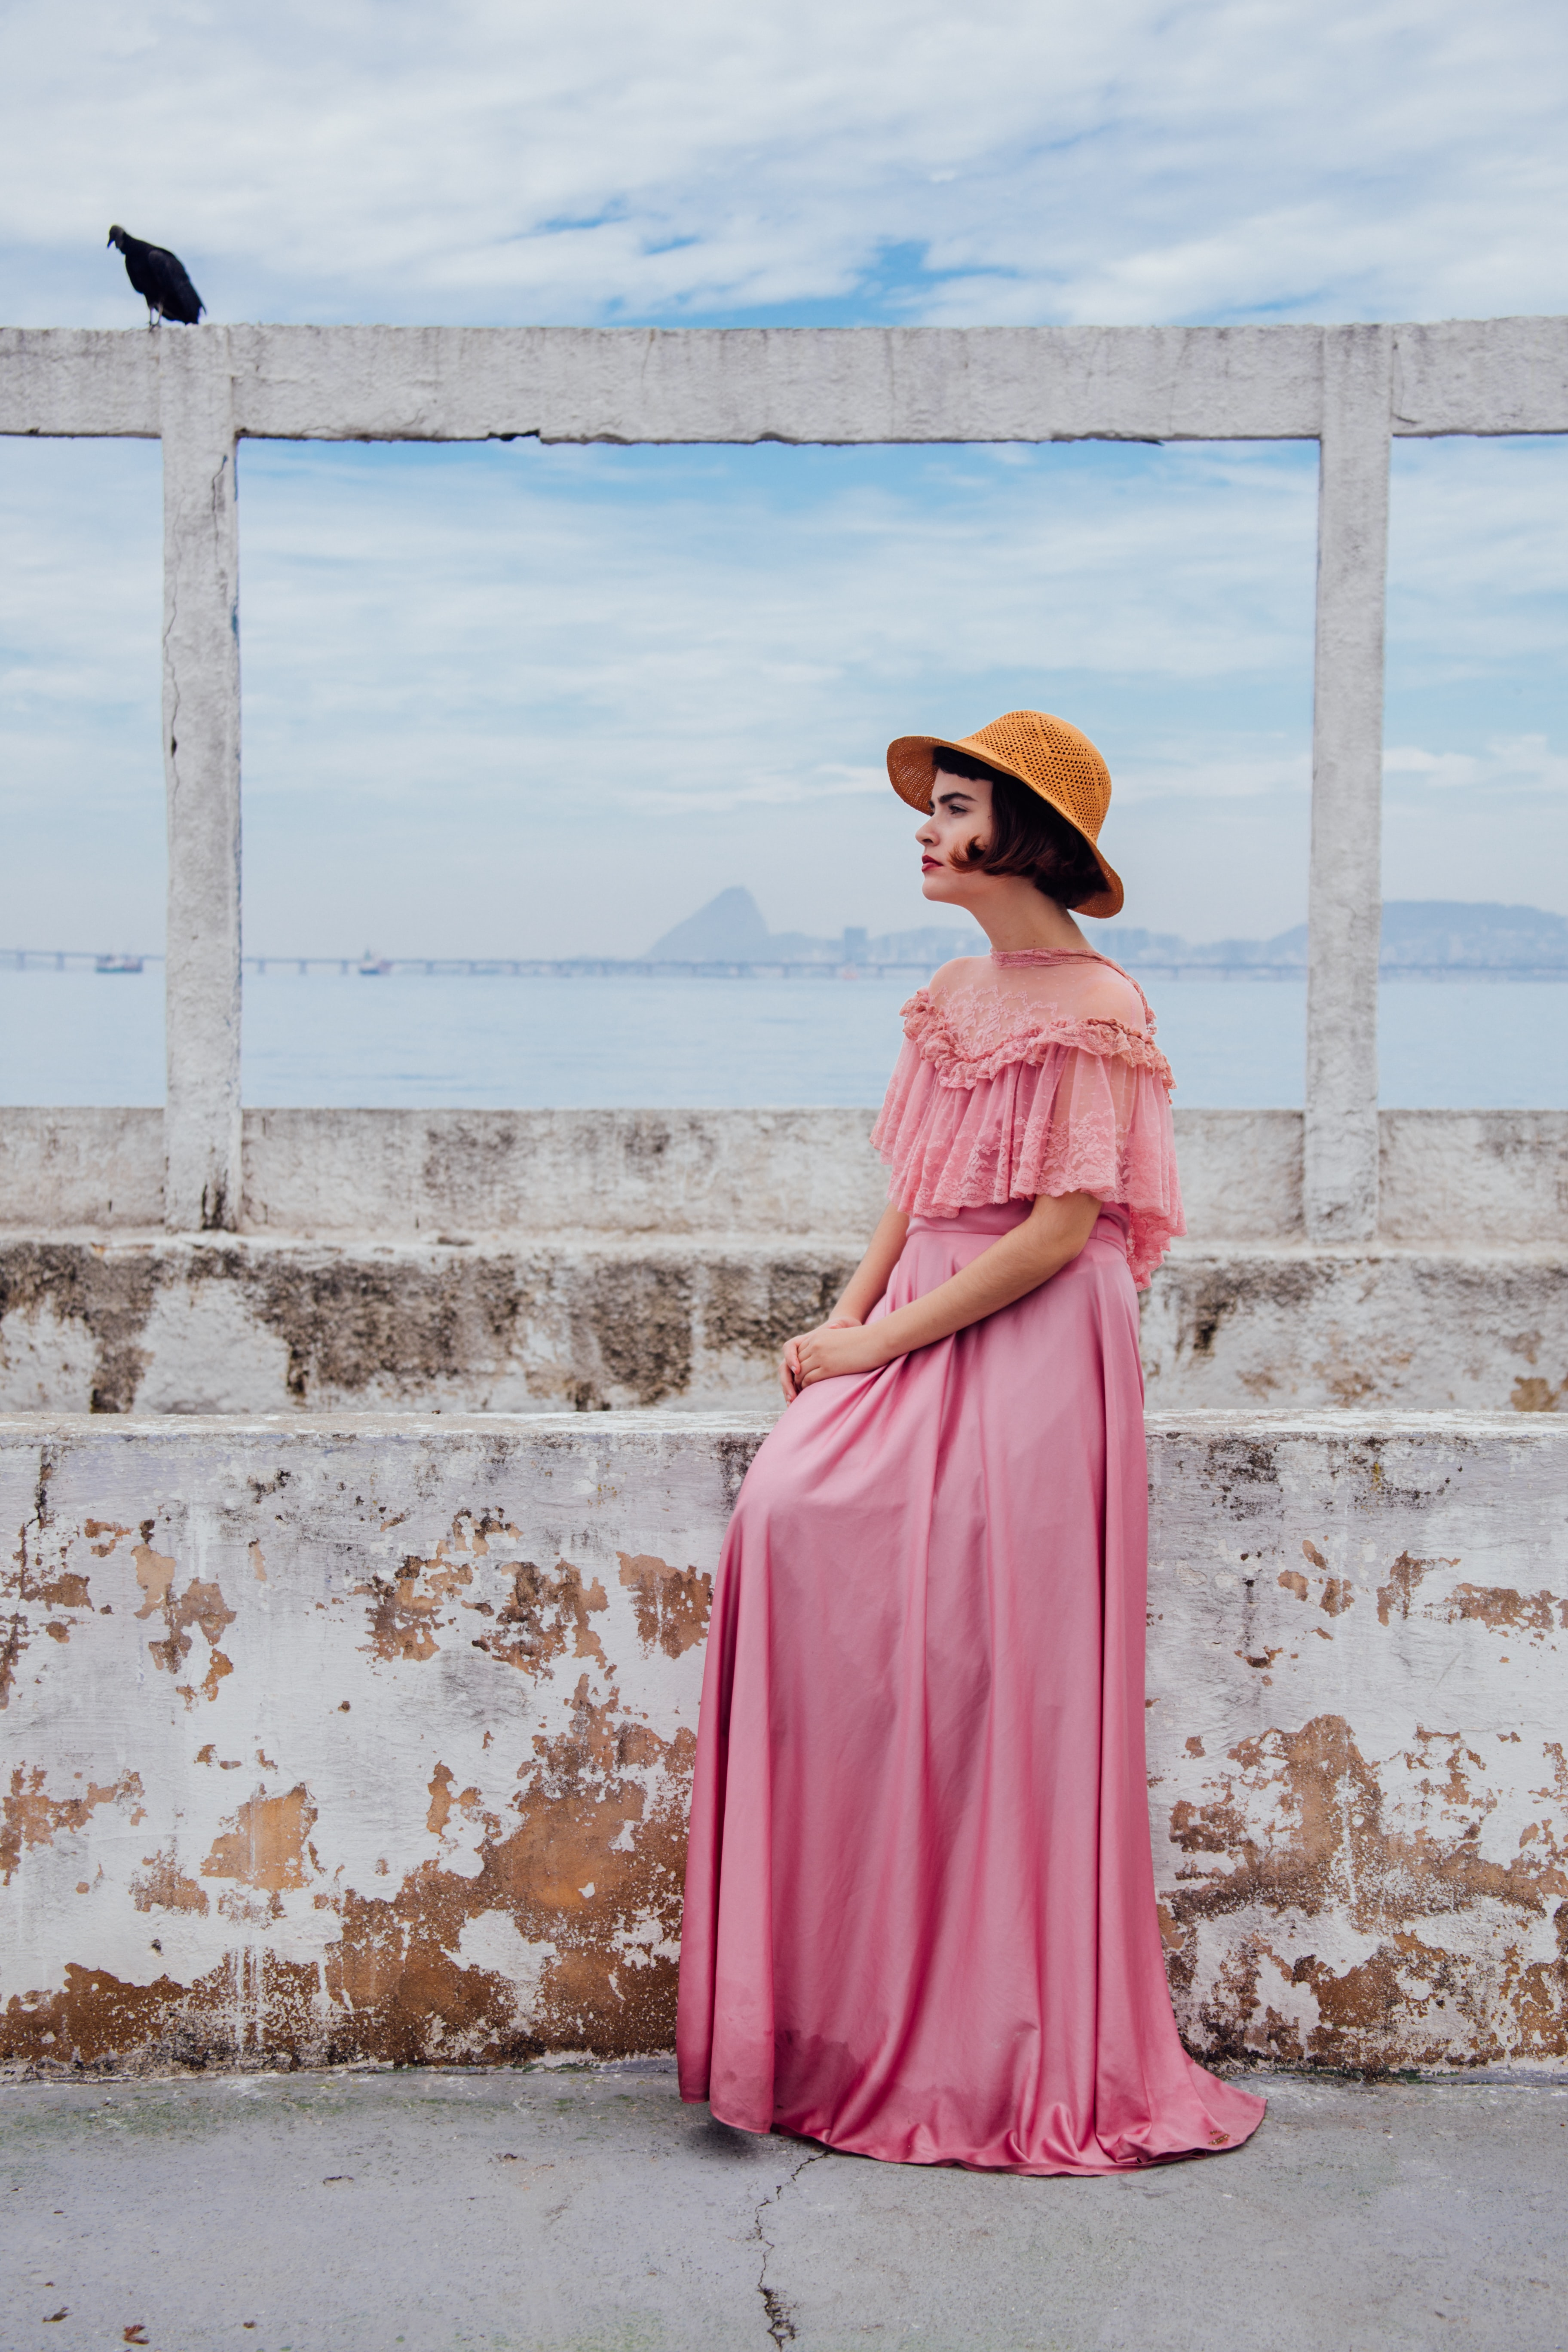 woman wearing pink dress standing next to white wall